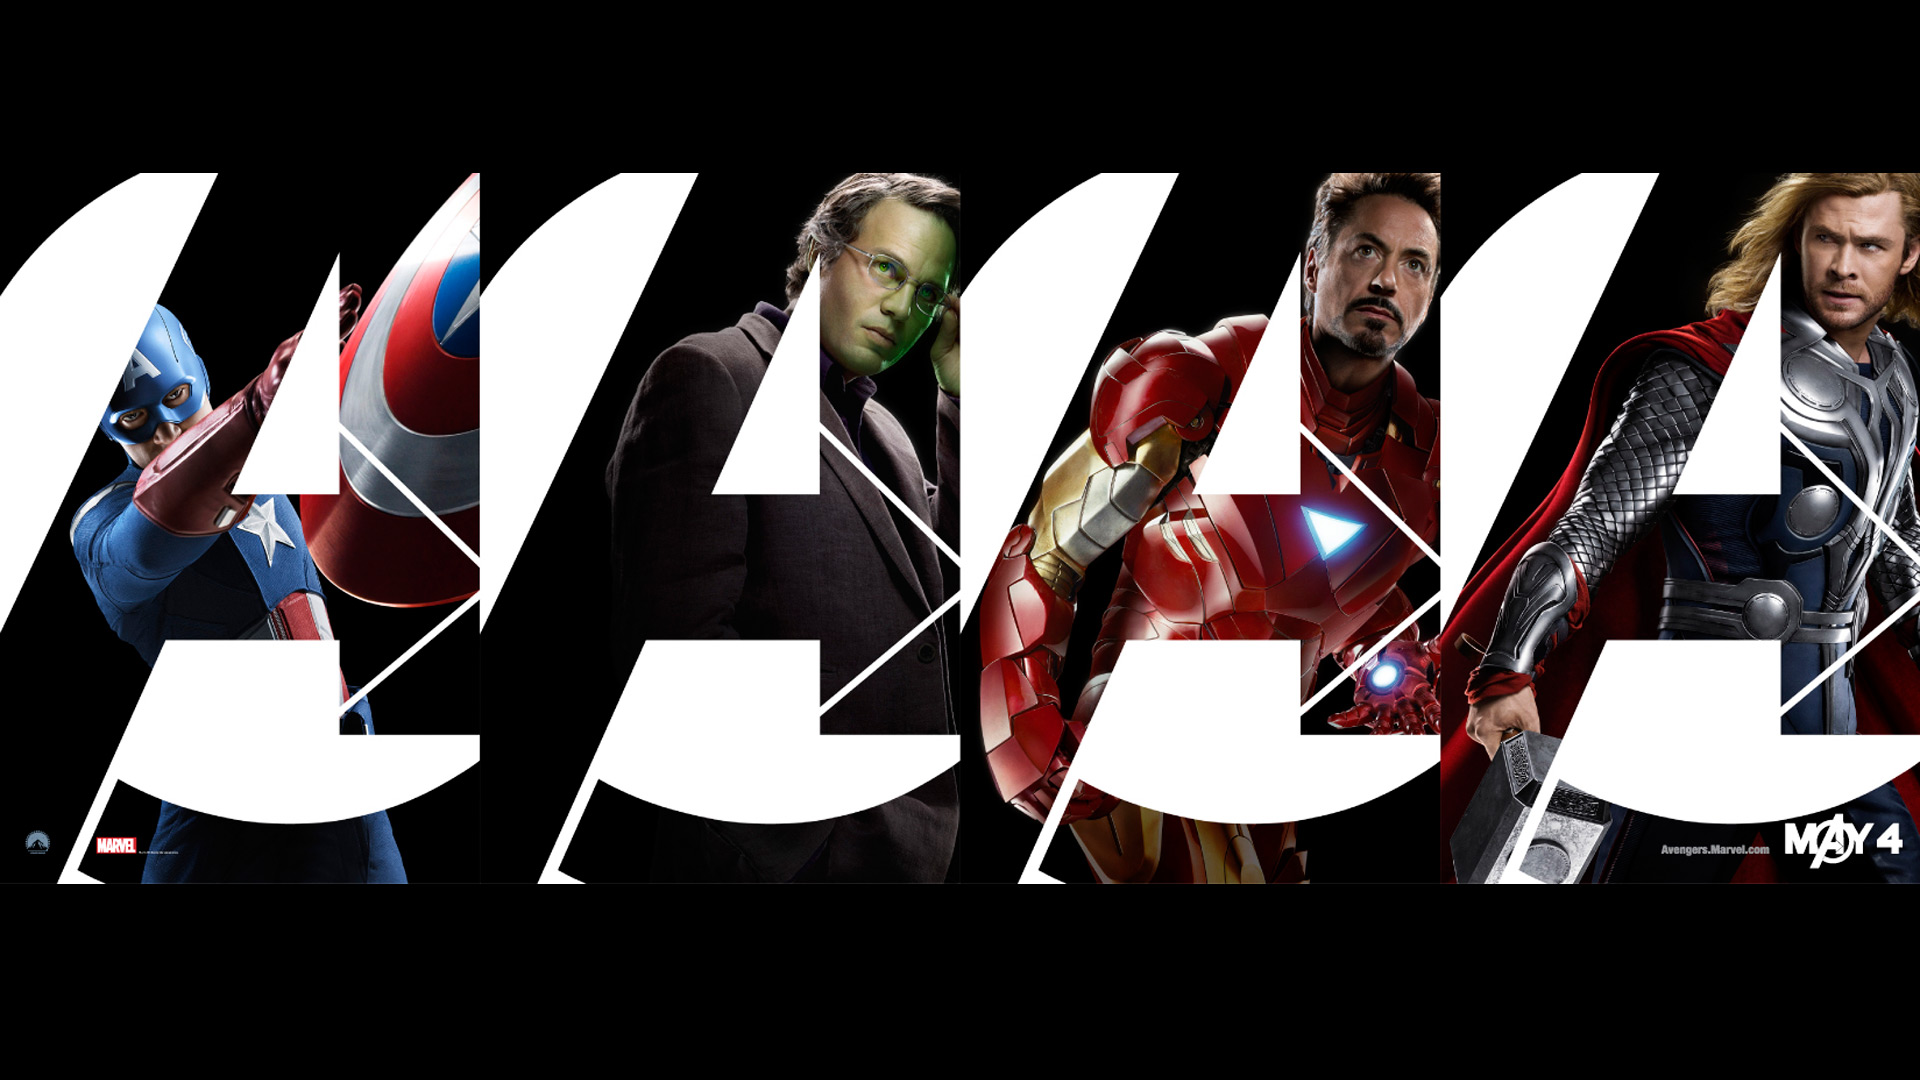 Wallpaper Os Vingadores 03